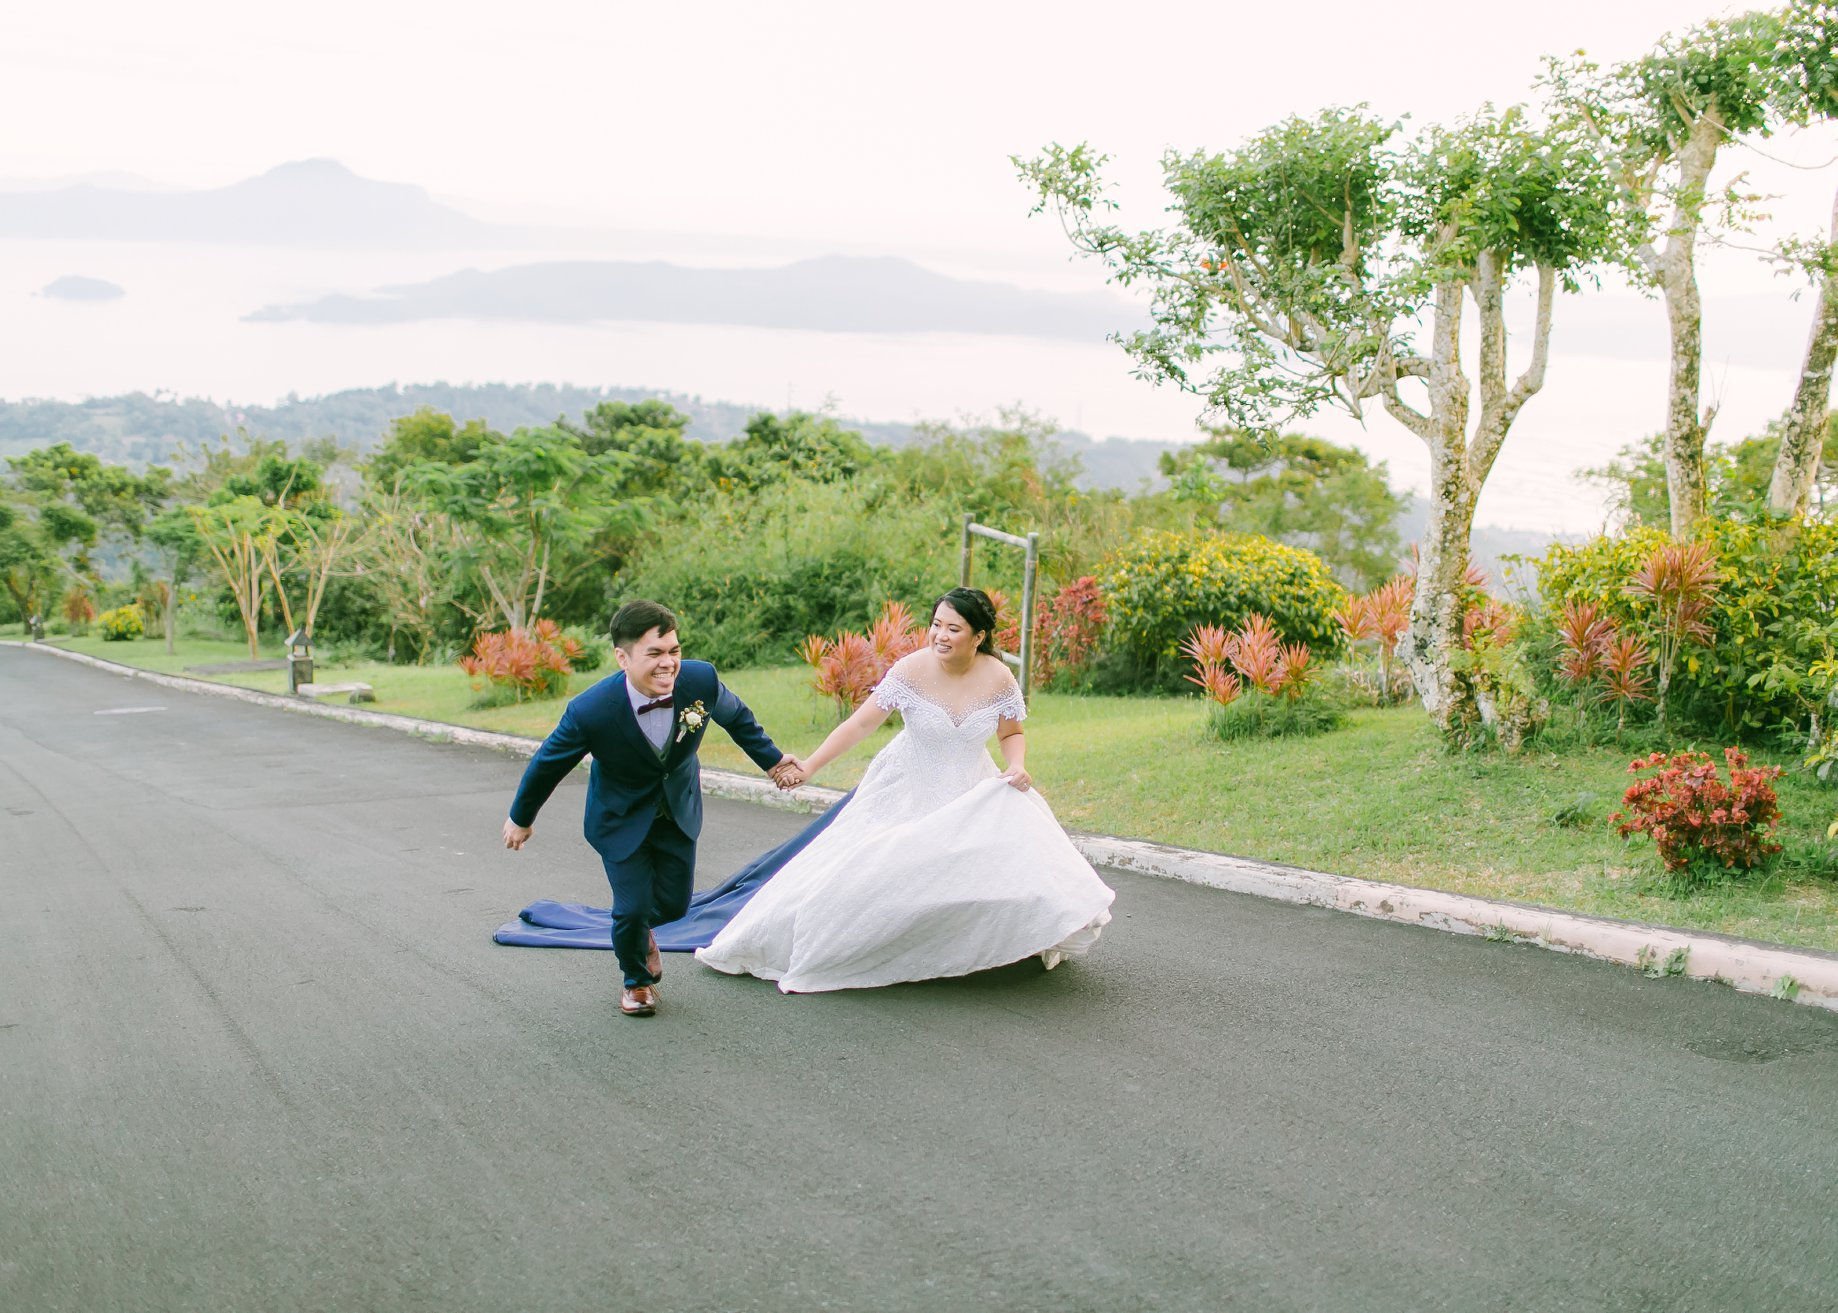 Tagaytay wedding venue balai taal offichallymorada for Tagaytay wedding venue